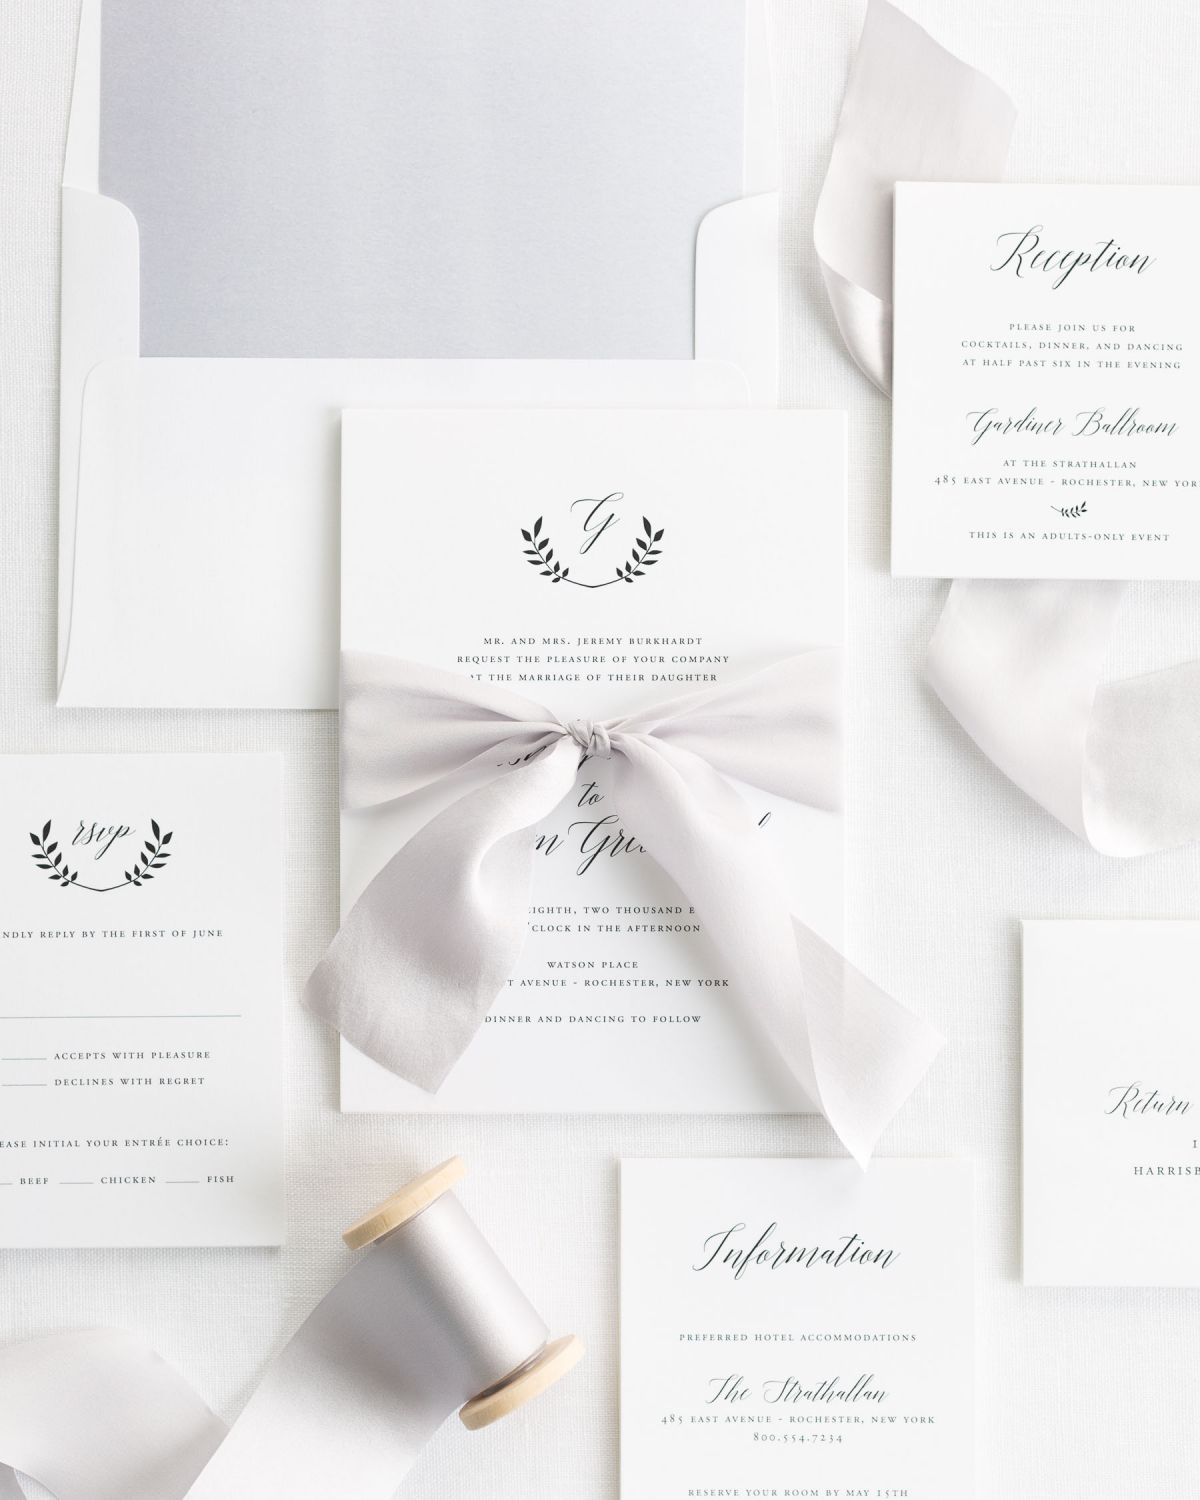 Complete Wedding Invitation Suite with Silver Ribbon and Enclosures